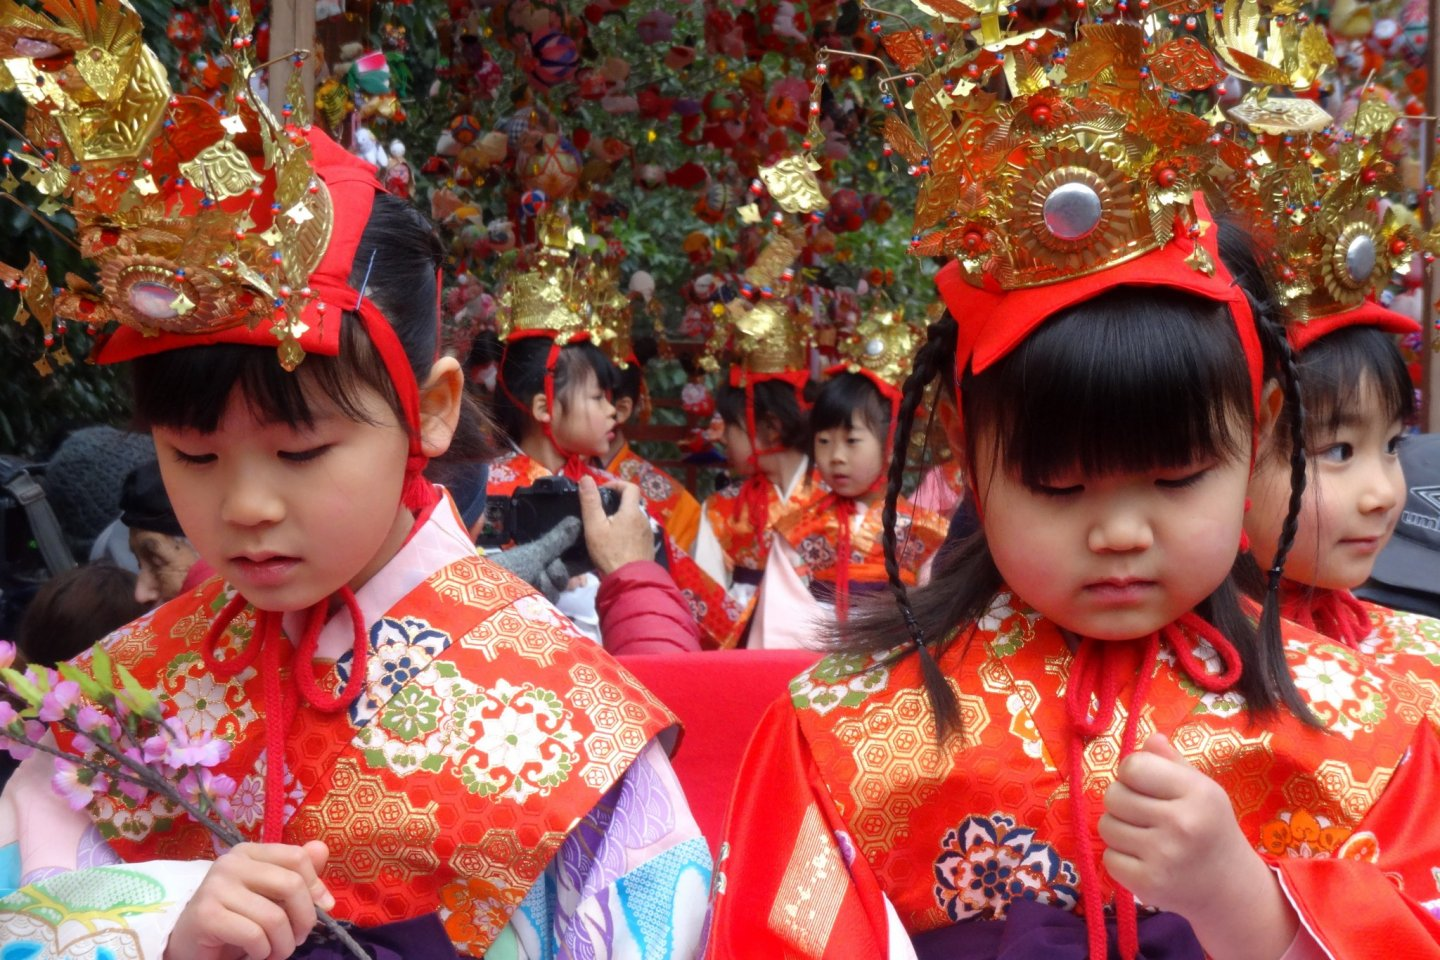 Young girls board floats for the opening parade of Yanagawa's Hina festivities